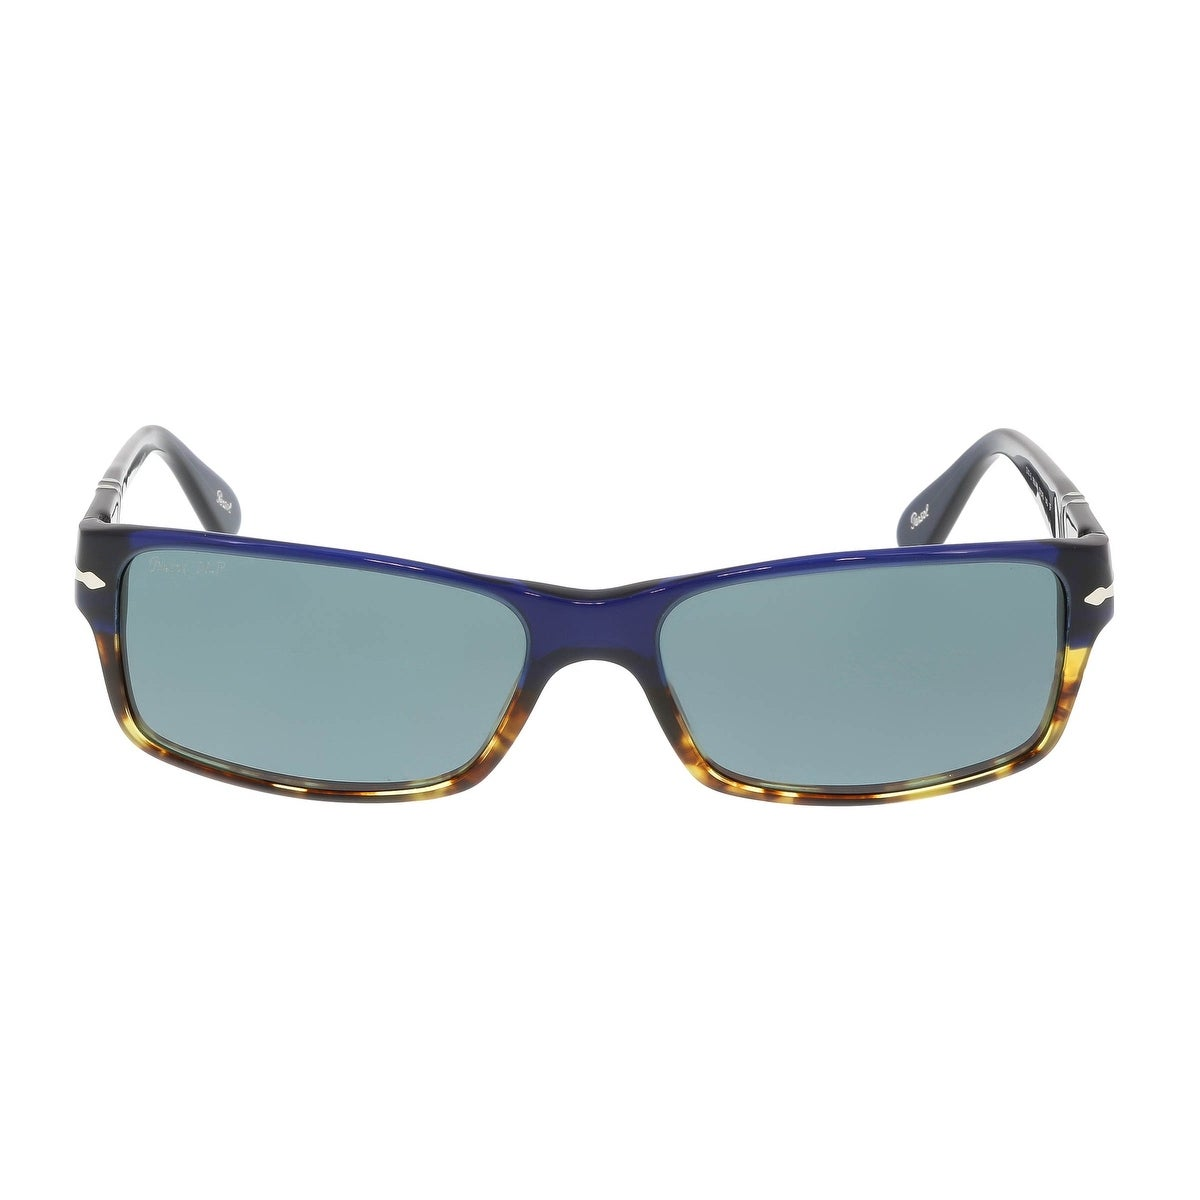 b5b2641d314 Shop Persol PO2747S 955 4N Blue Gradient Tortoise Rectangle Sunglasses - 57- 16-140 - Free Shipping Today - Overstock - 17768413